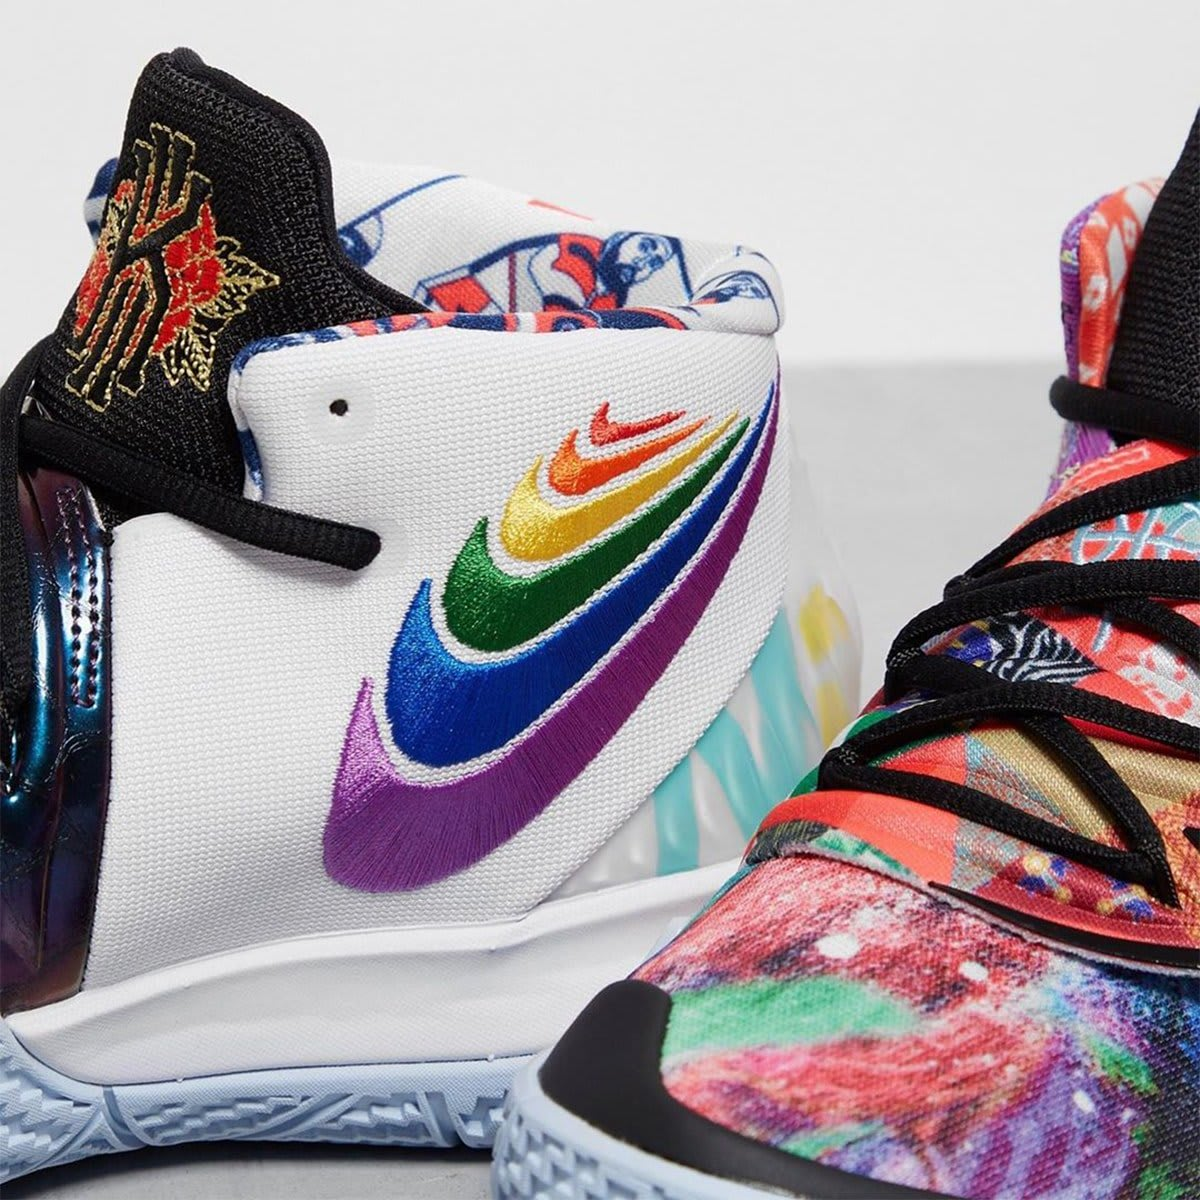 Nike Kyrie S2 Hybrid 'What The' Medial